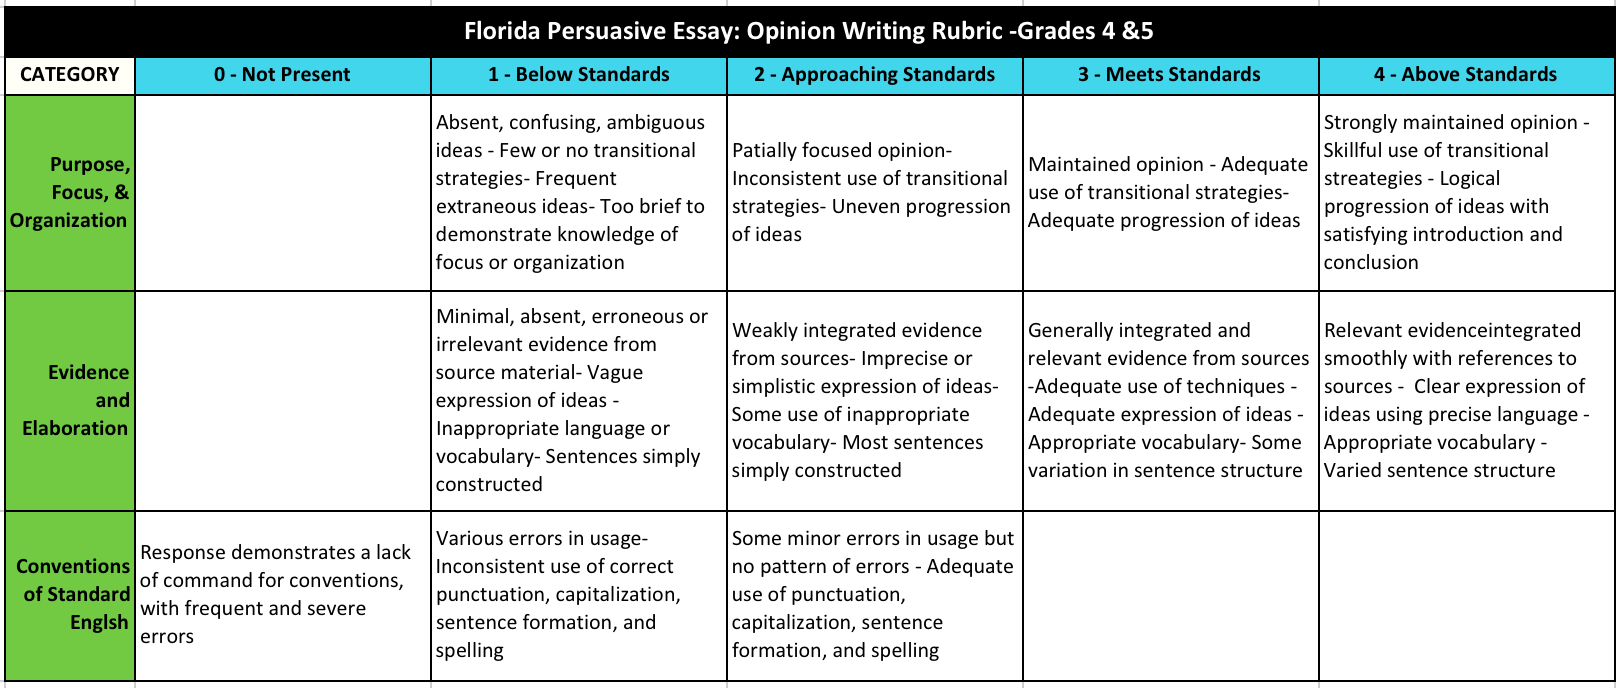 opinion essays fifth grade 5th grade opinion topics 5th grade opinion topics 1305 5th grade science links 4645 users 5th gr- 4th grading prd 2299 users 5th grade 875 users 5th grade.